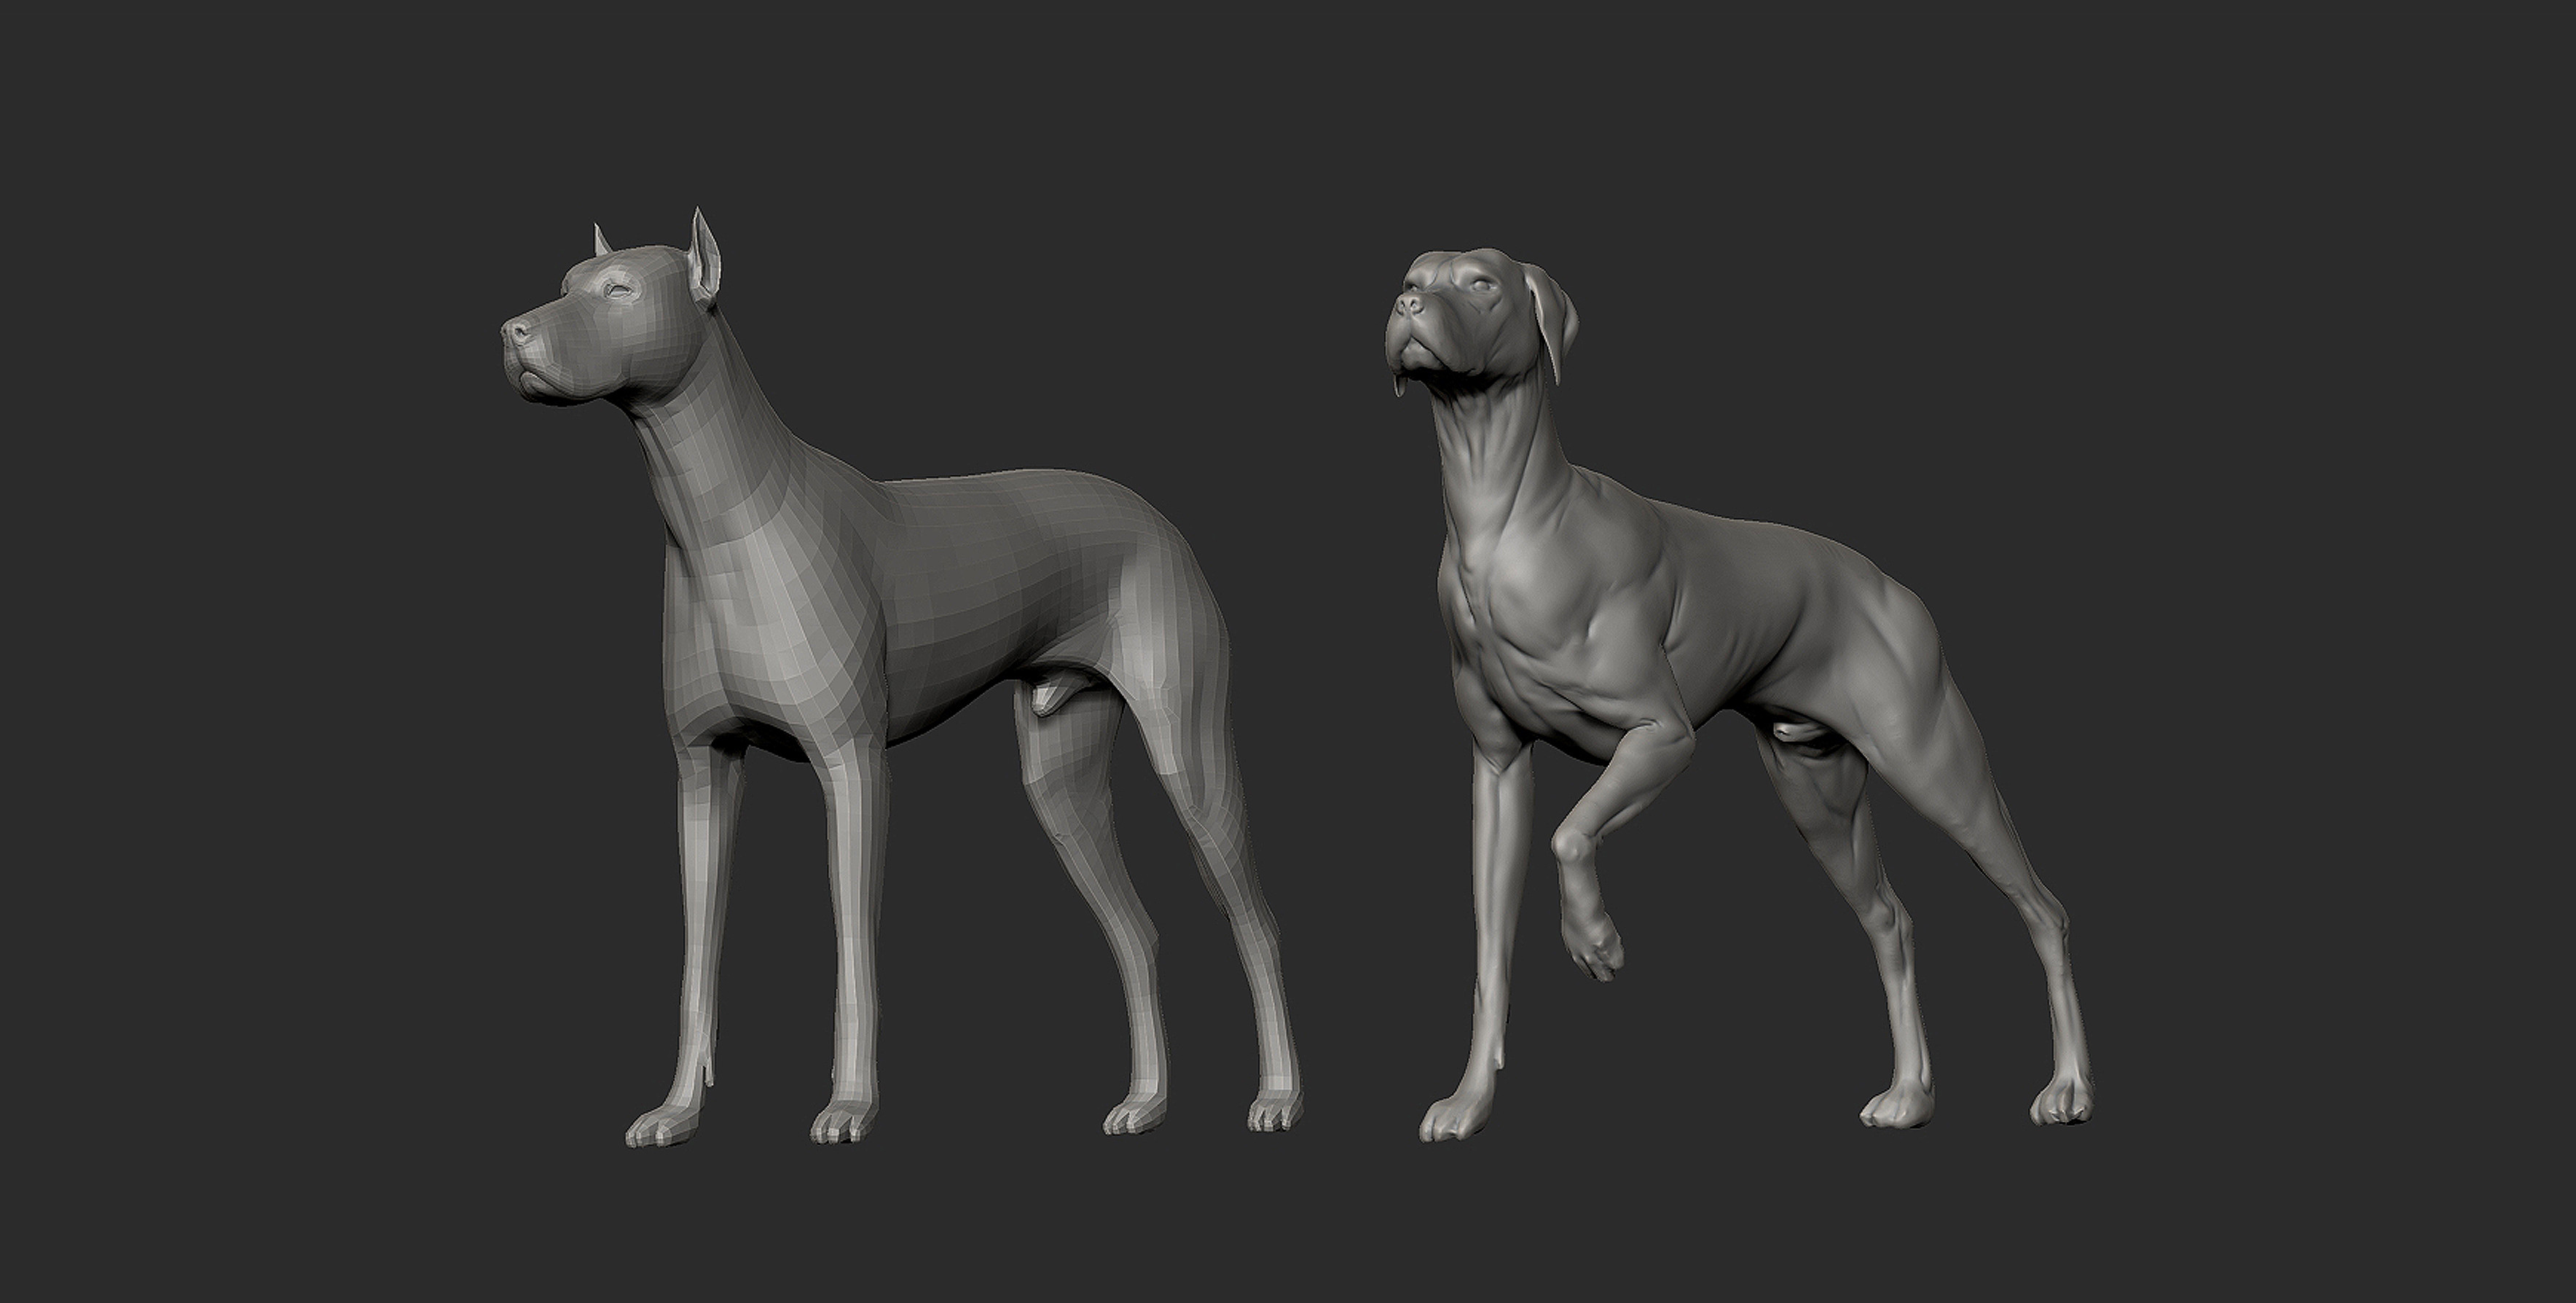 Sometimes I start from a ZTool to have a good base to start with. In this case I used the Dog found in the default Library (Left one).